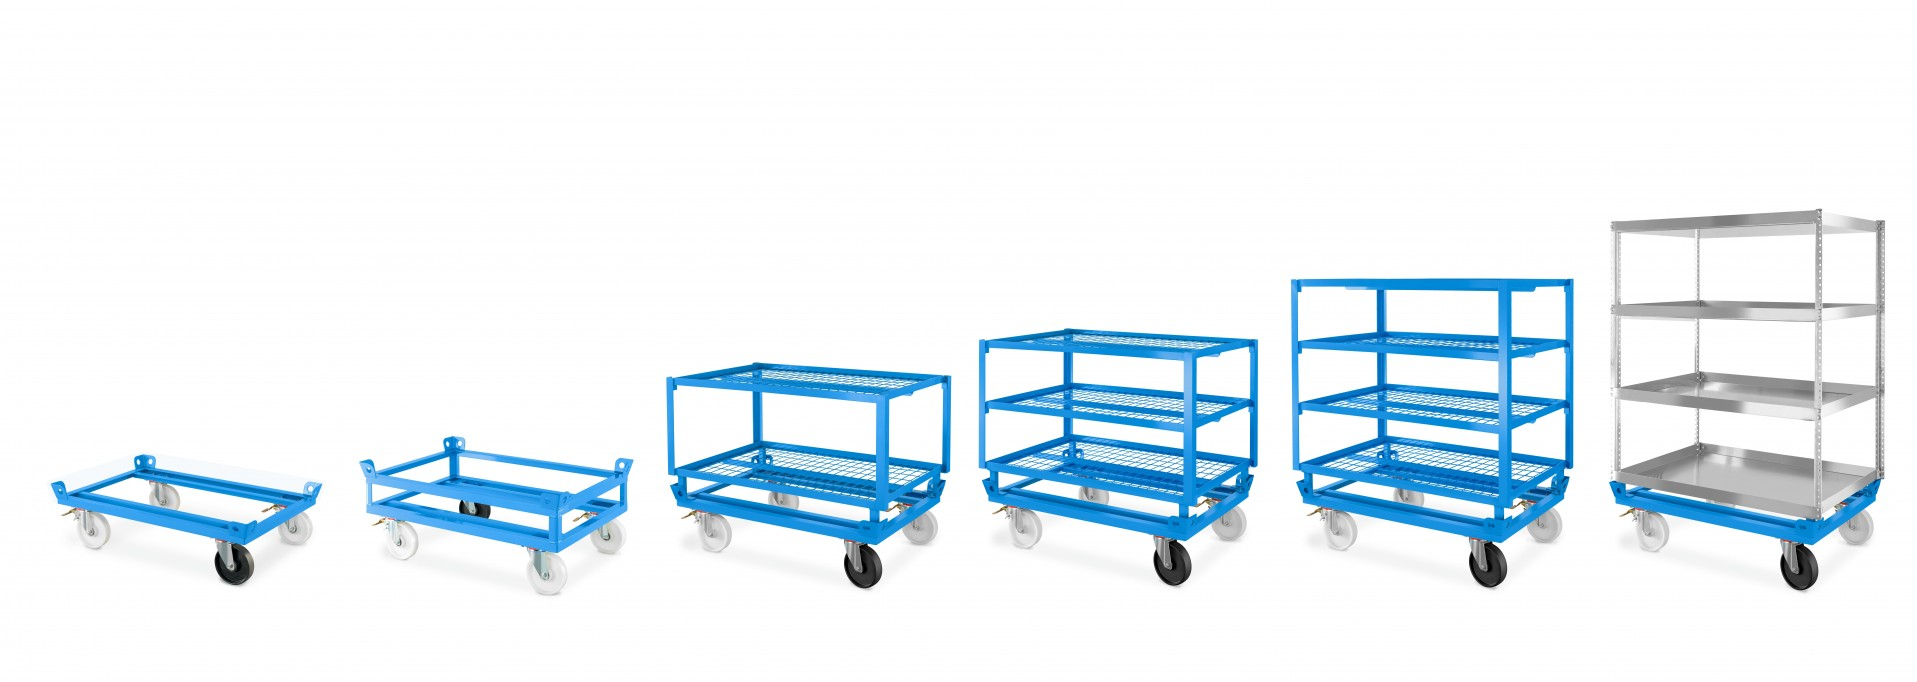 [Translate to Poland (Polish):] Trolleys